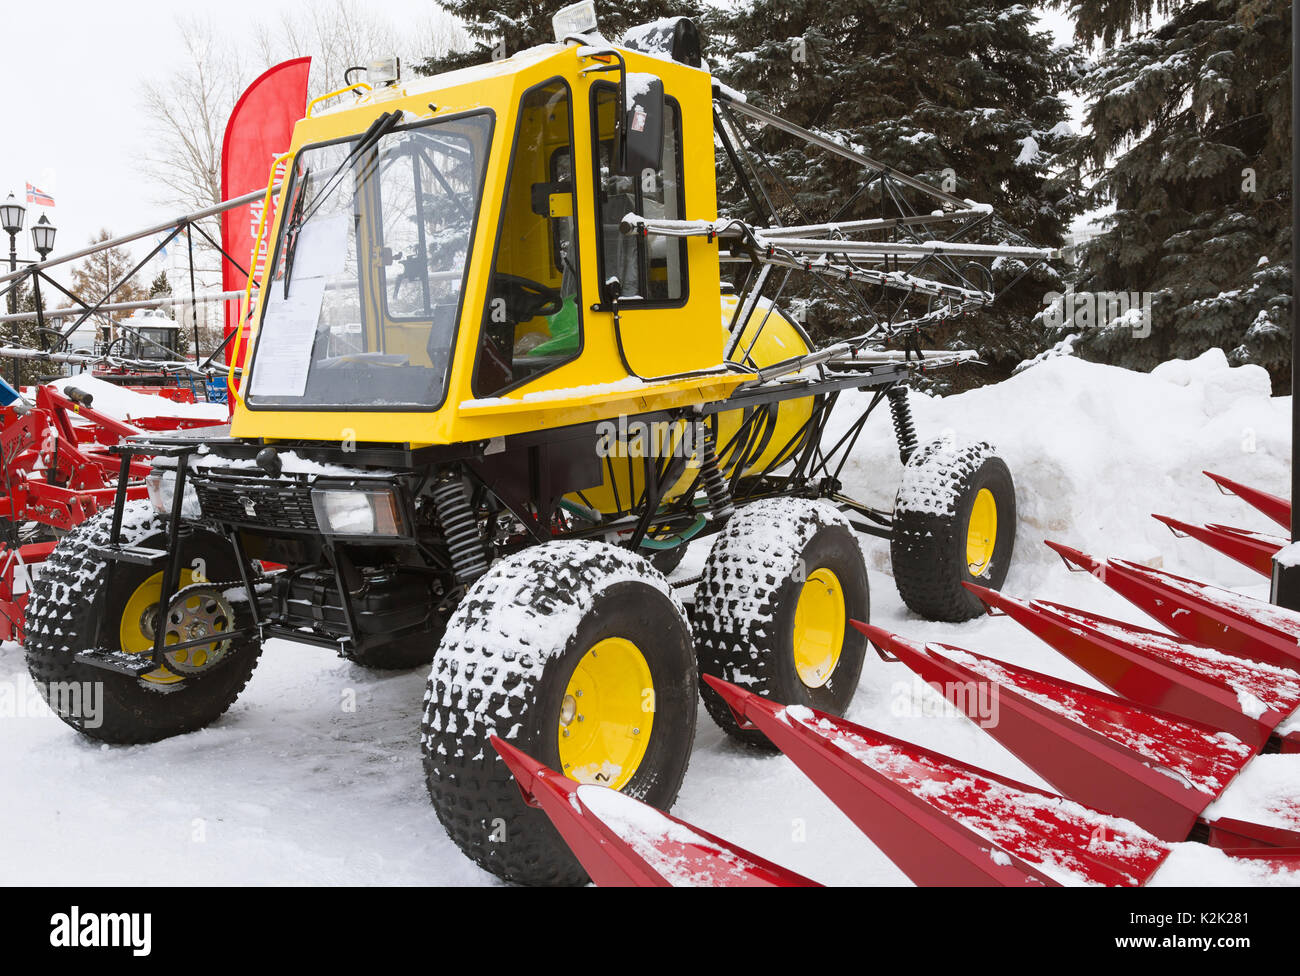 gelbe traktor s maschine auf schnee im winter stockfoto bild 156541505 alamy. Black Bedroom Furniture Sets. Home Design Ideas